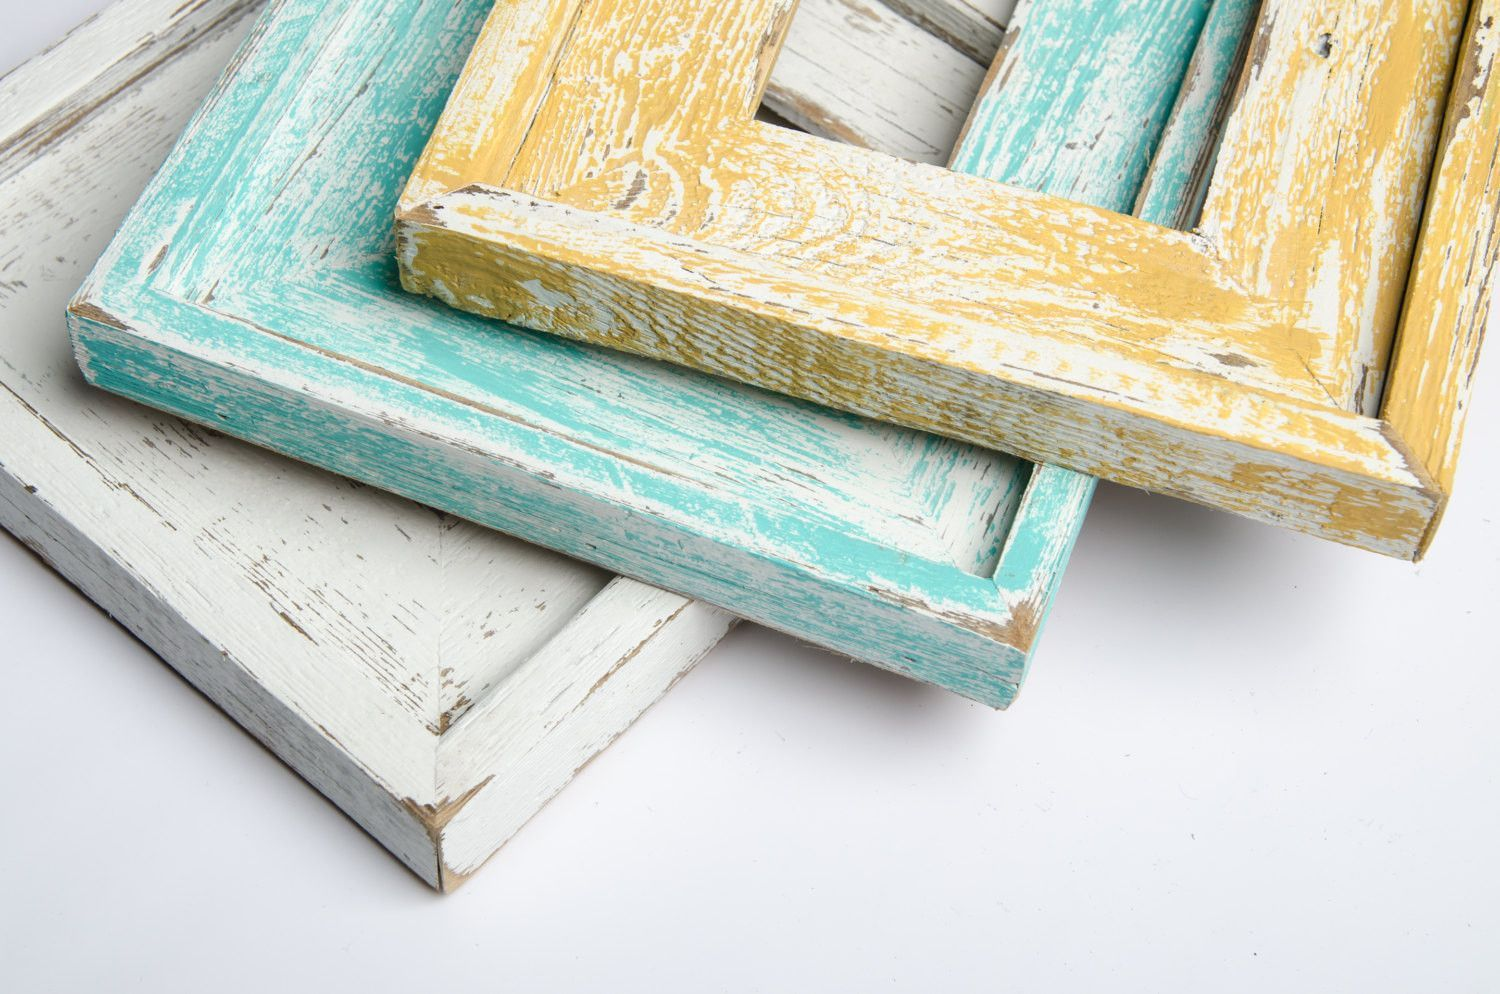 3) 8x10 Stacked Rustic Barnwood White, Yellow, Turquoise Stacked ...